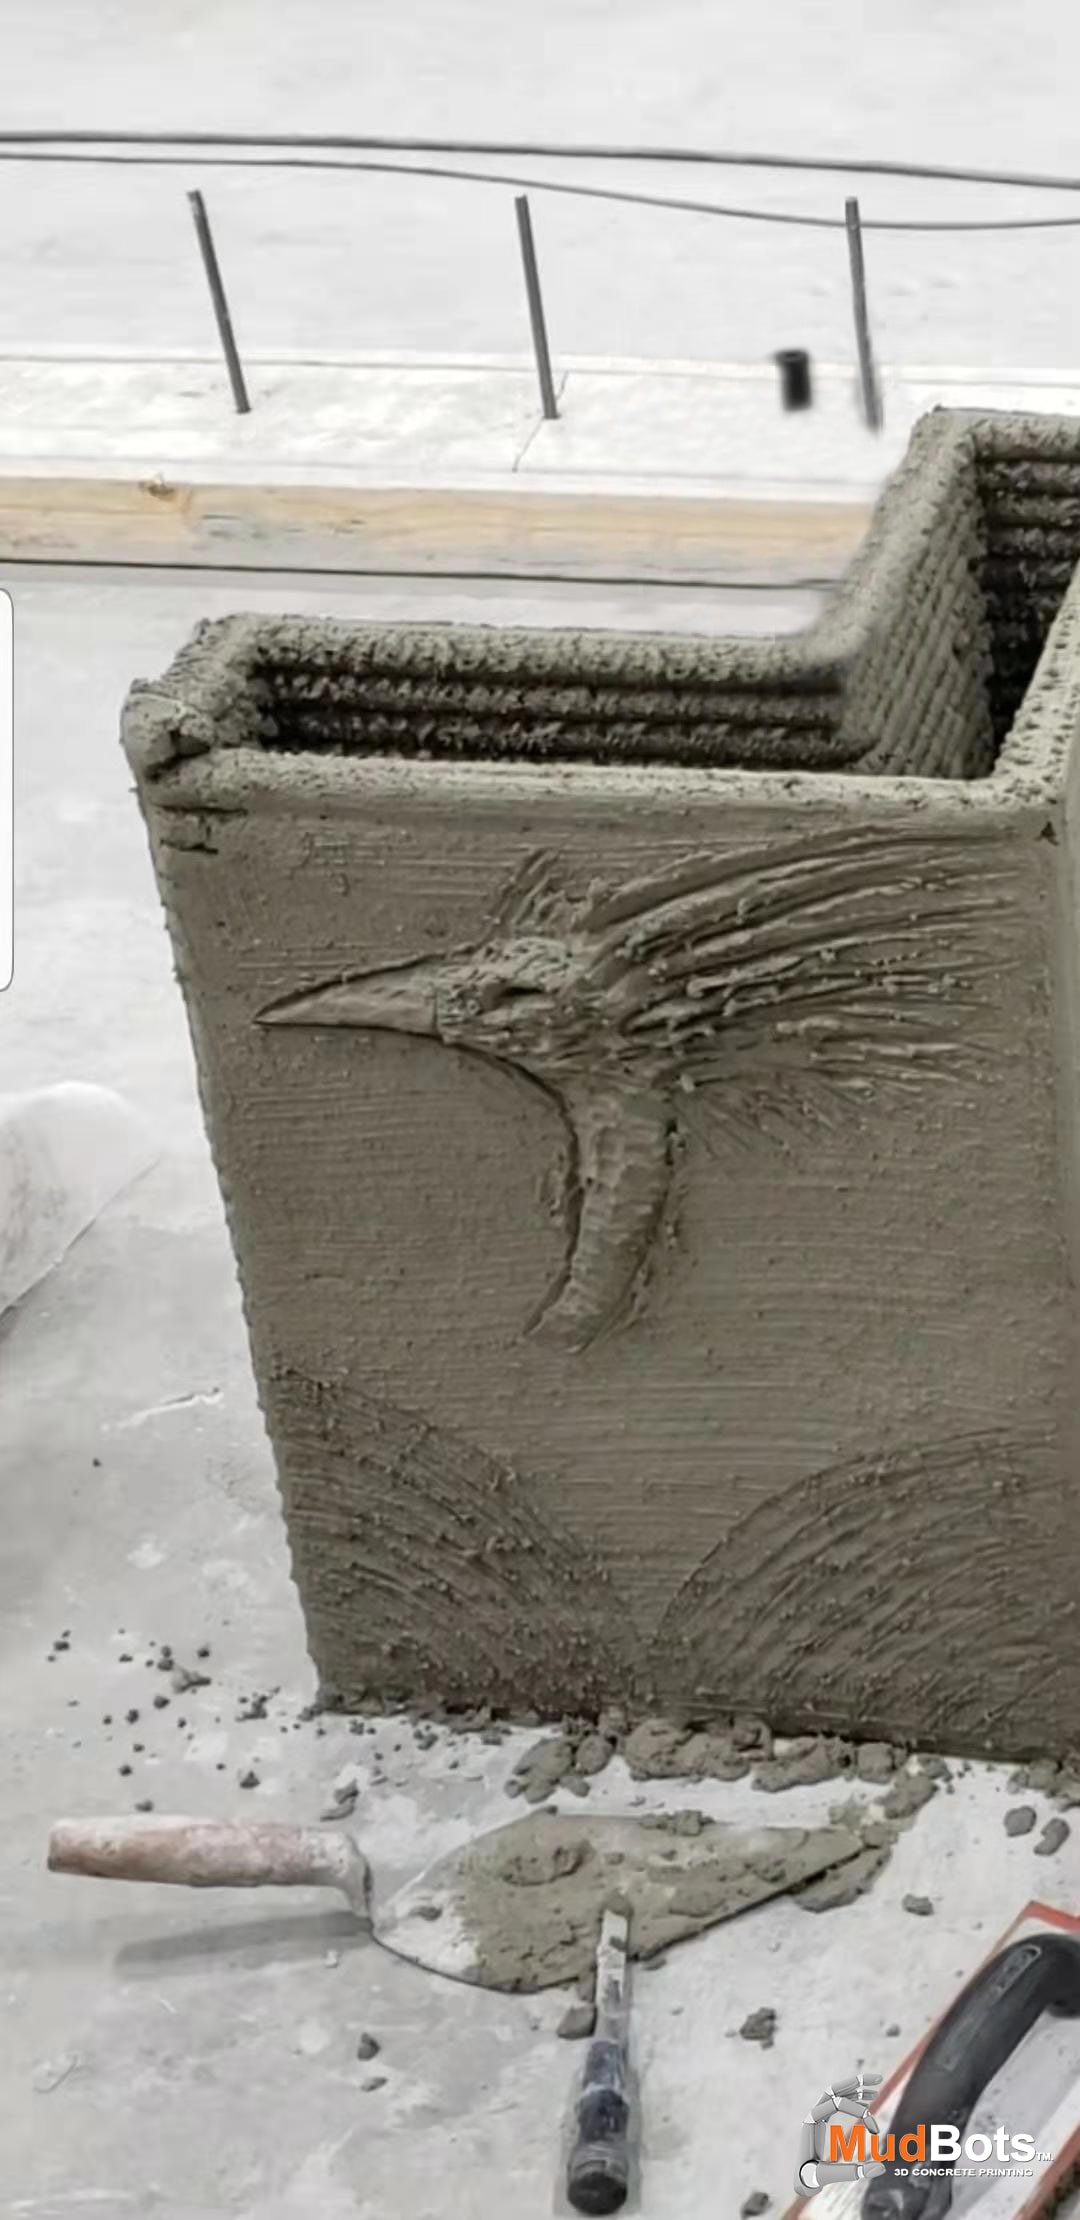 Have fun while you create! Carve beautiful characters and designs on 3D printed concrete walls.